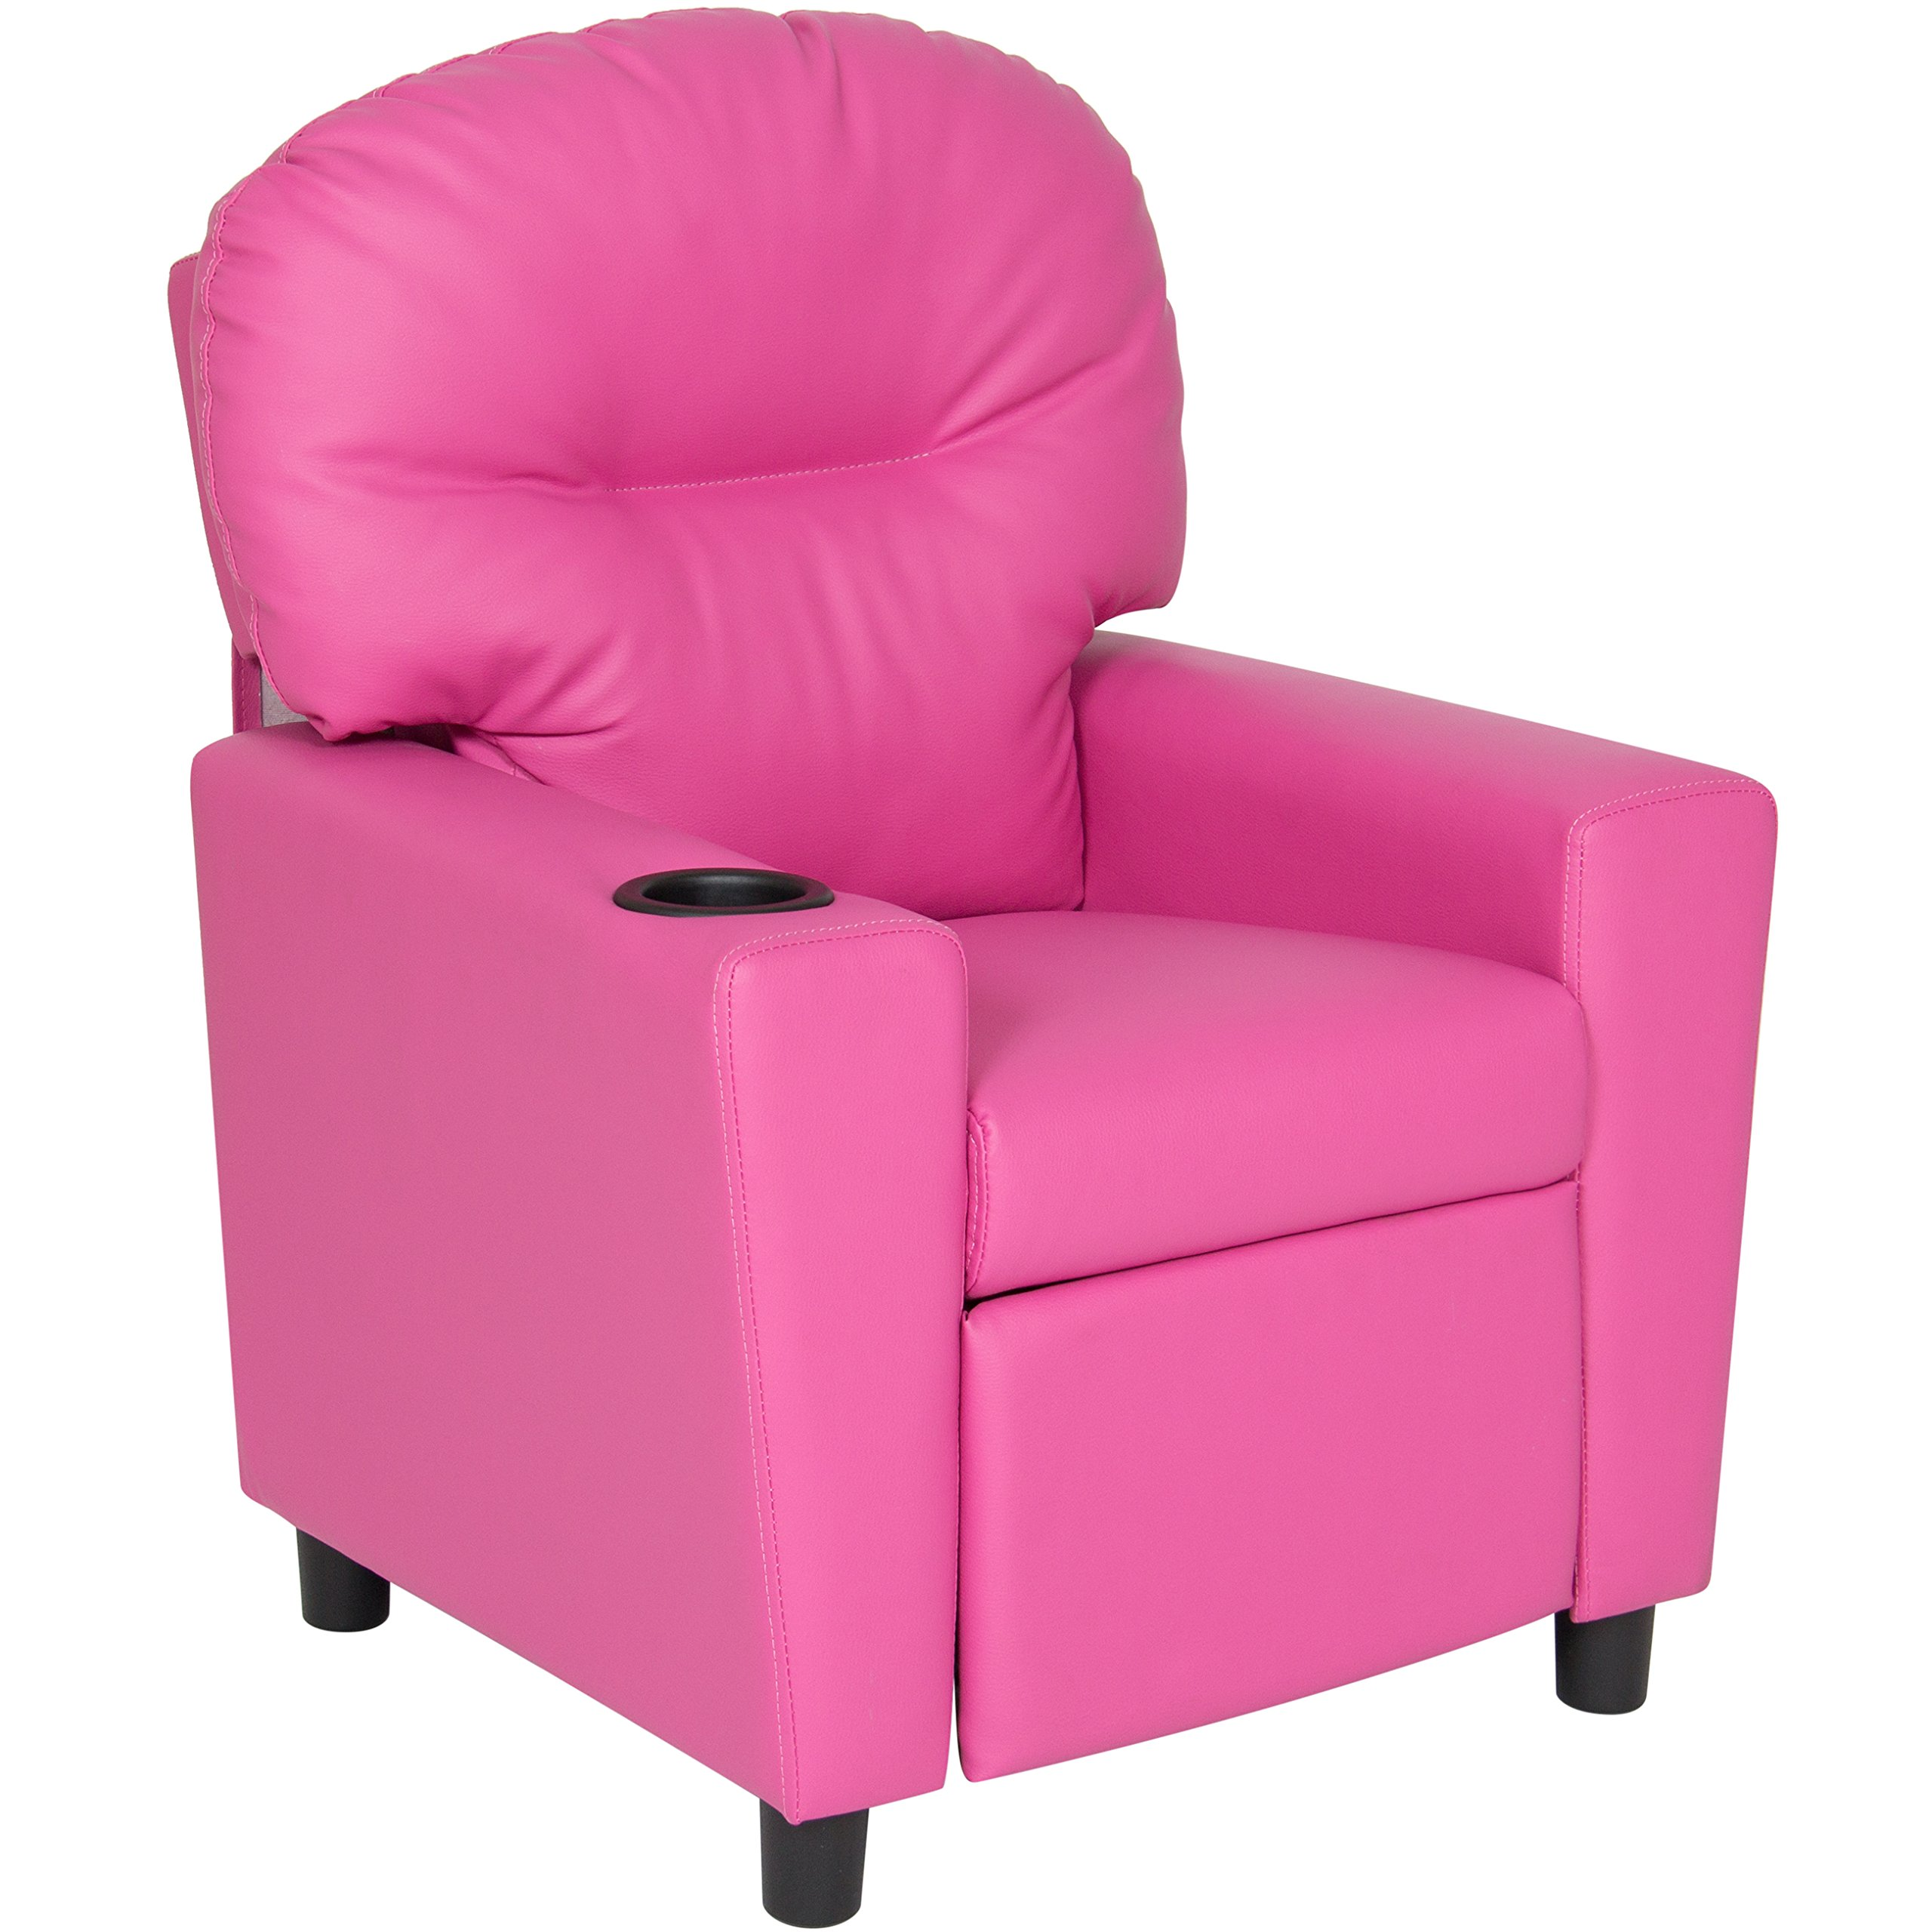 Best Choice Products Kids Furniture Recliner Chair with Cup Holder- Pink